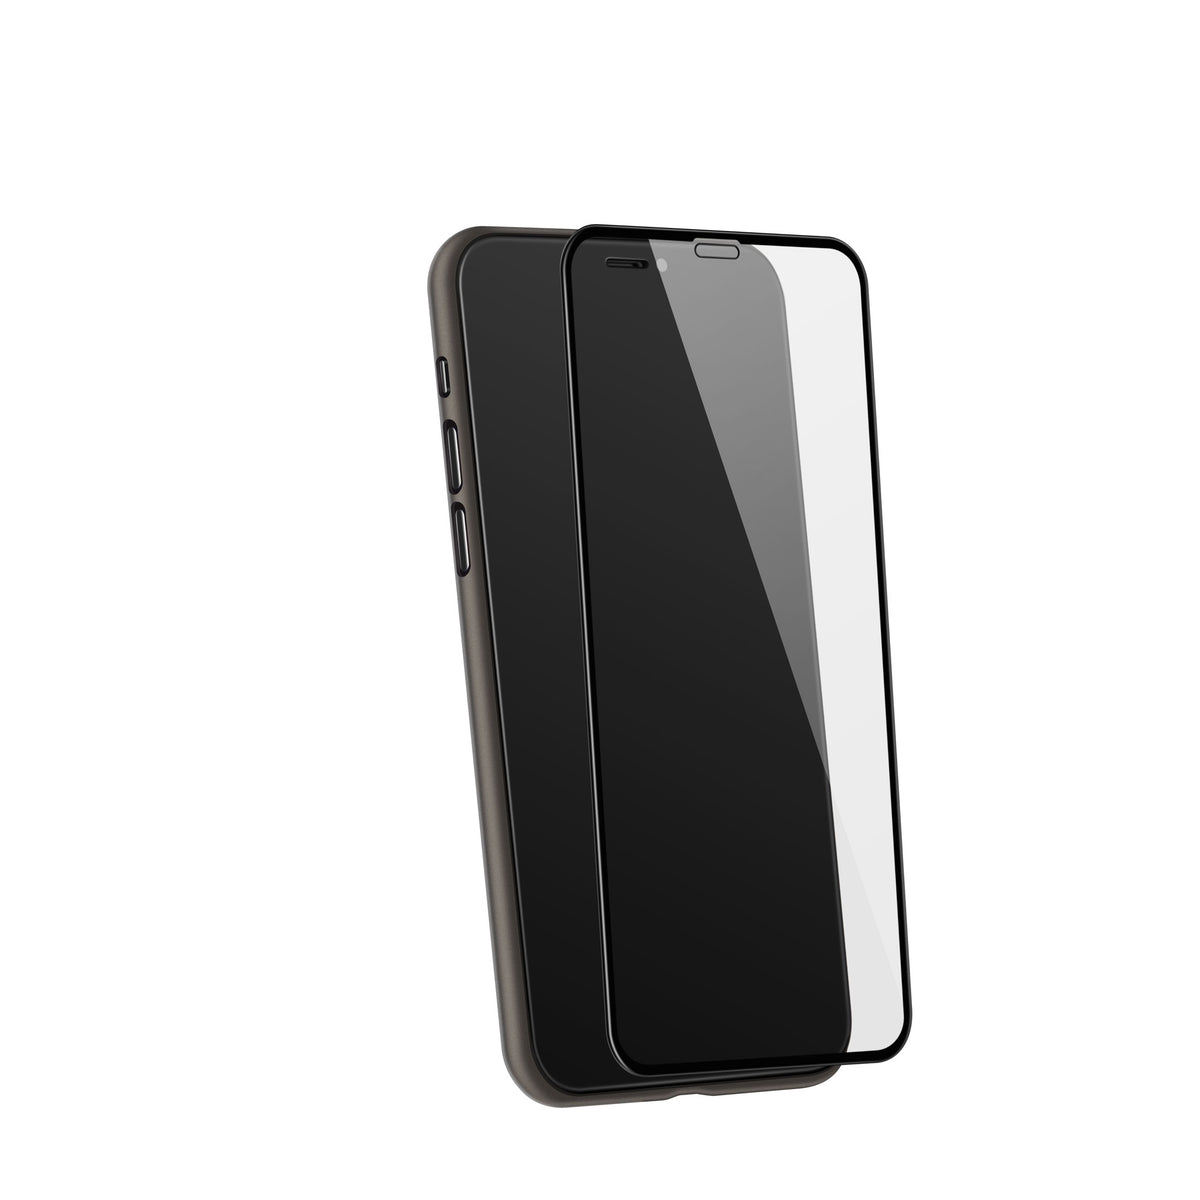 iPhone 11 Pro Glass Screen Protector (Curve Edge)